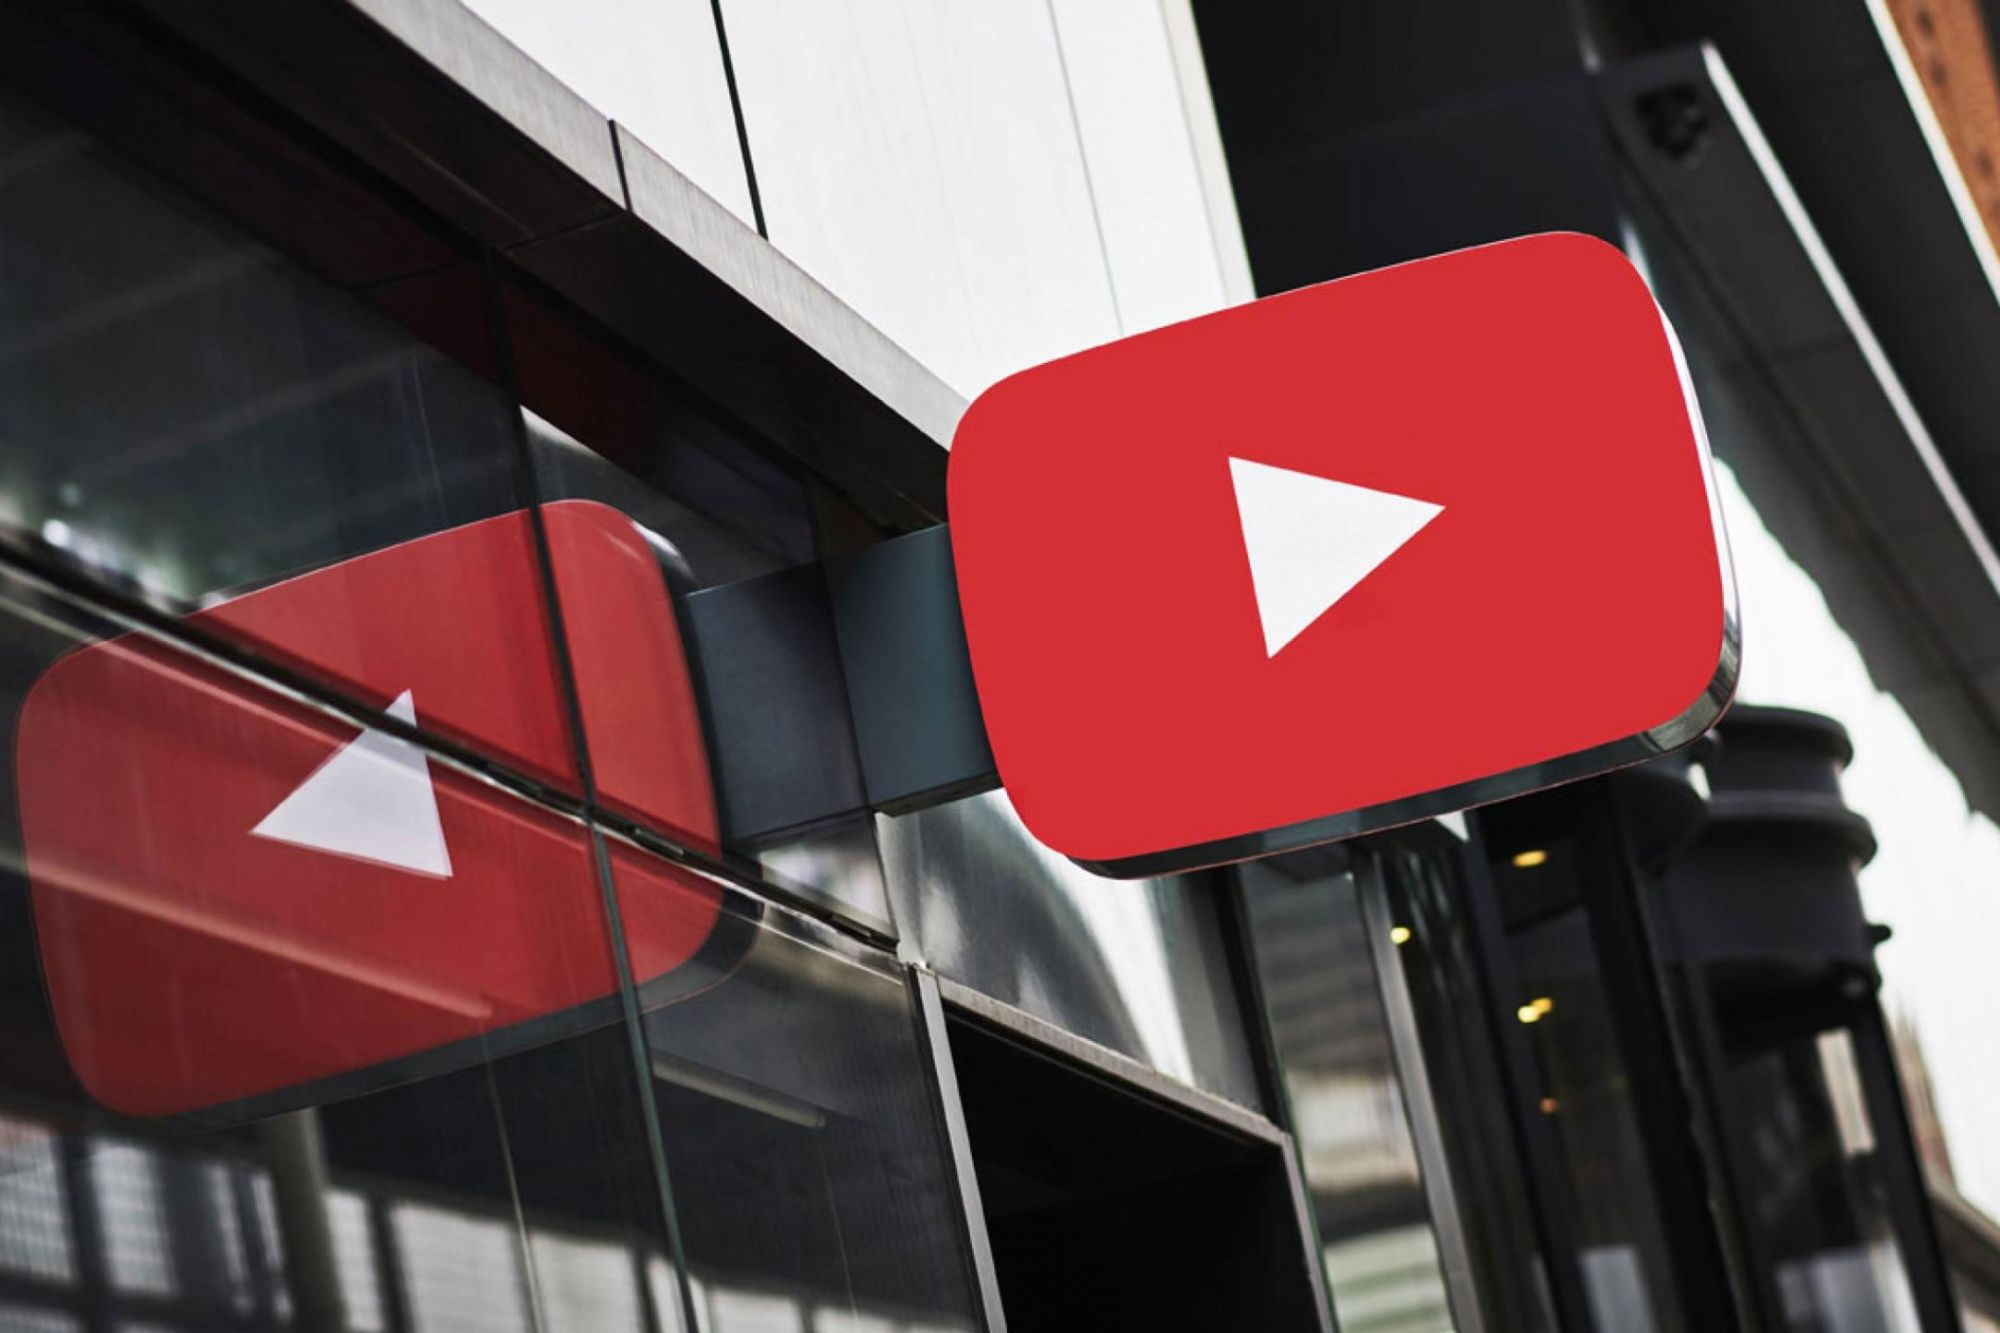 Court Rules YouTube Does Not Illegally Censor Conservative Content